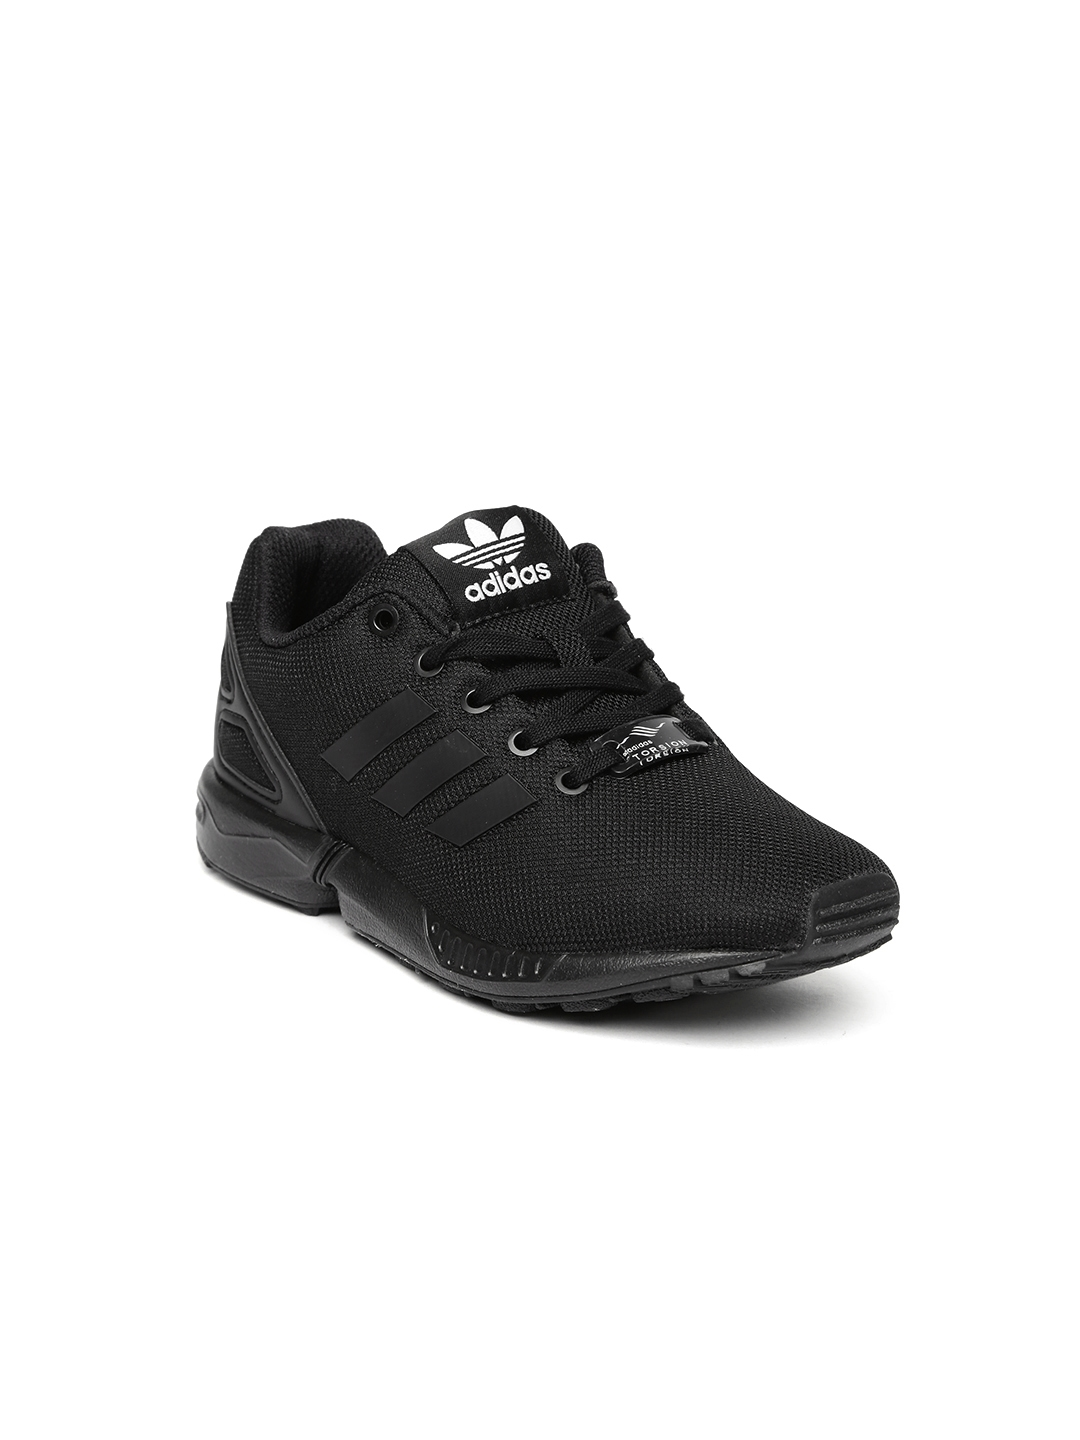 premium selection 9b482 27f1d ADIDAS Originals Kids Black Solid ZX Flux C Sneakers